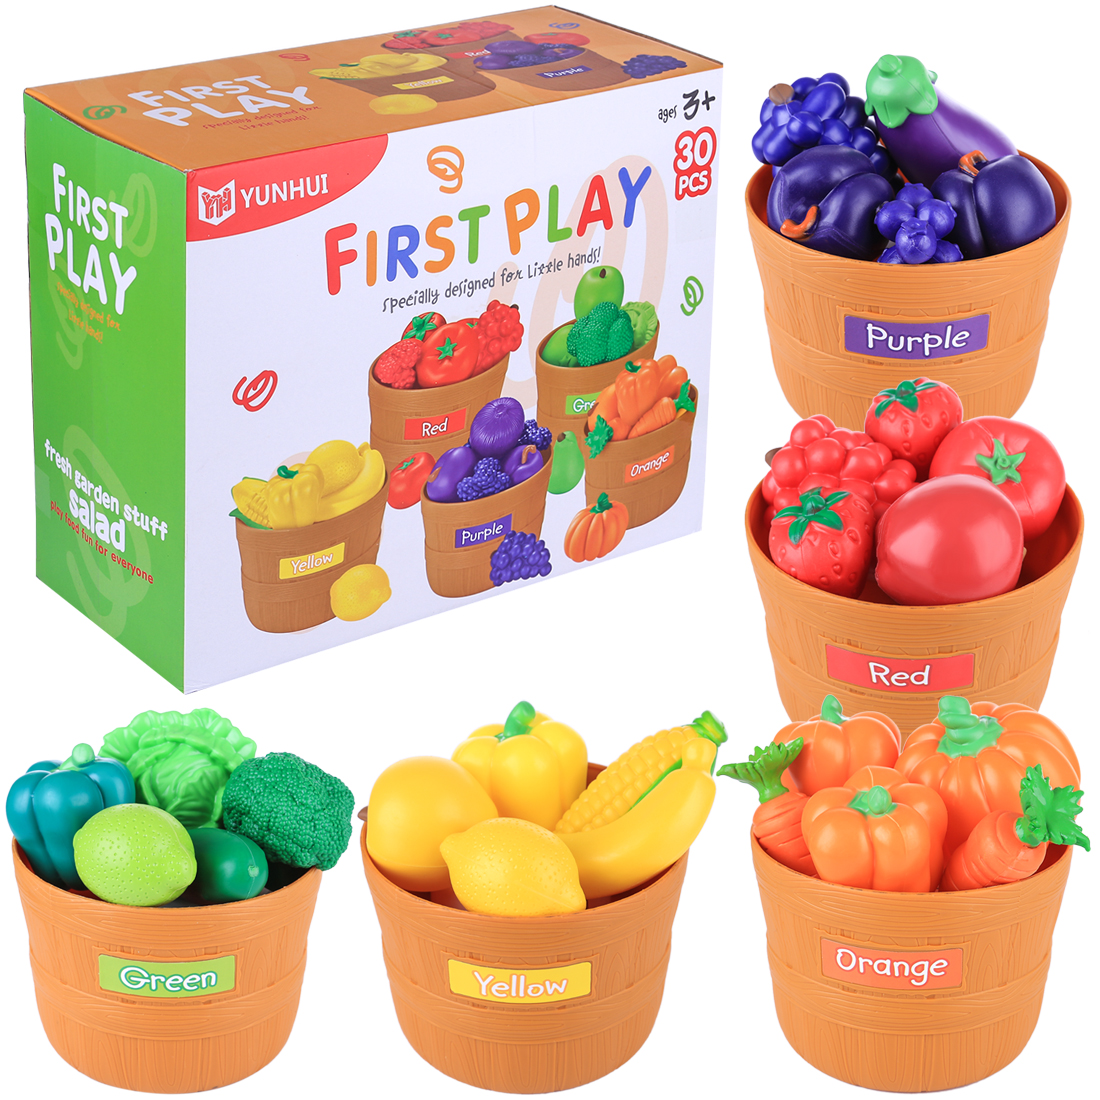 New 30Pcs Children Pretend Play Fruits And Vegetables Playset Pre-School Learning Educational Toys Creative Cognition For Kids